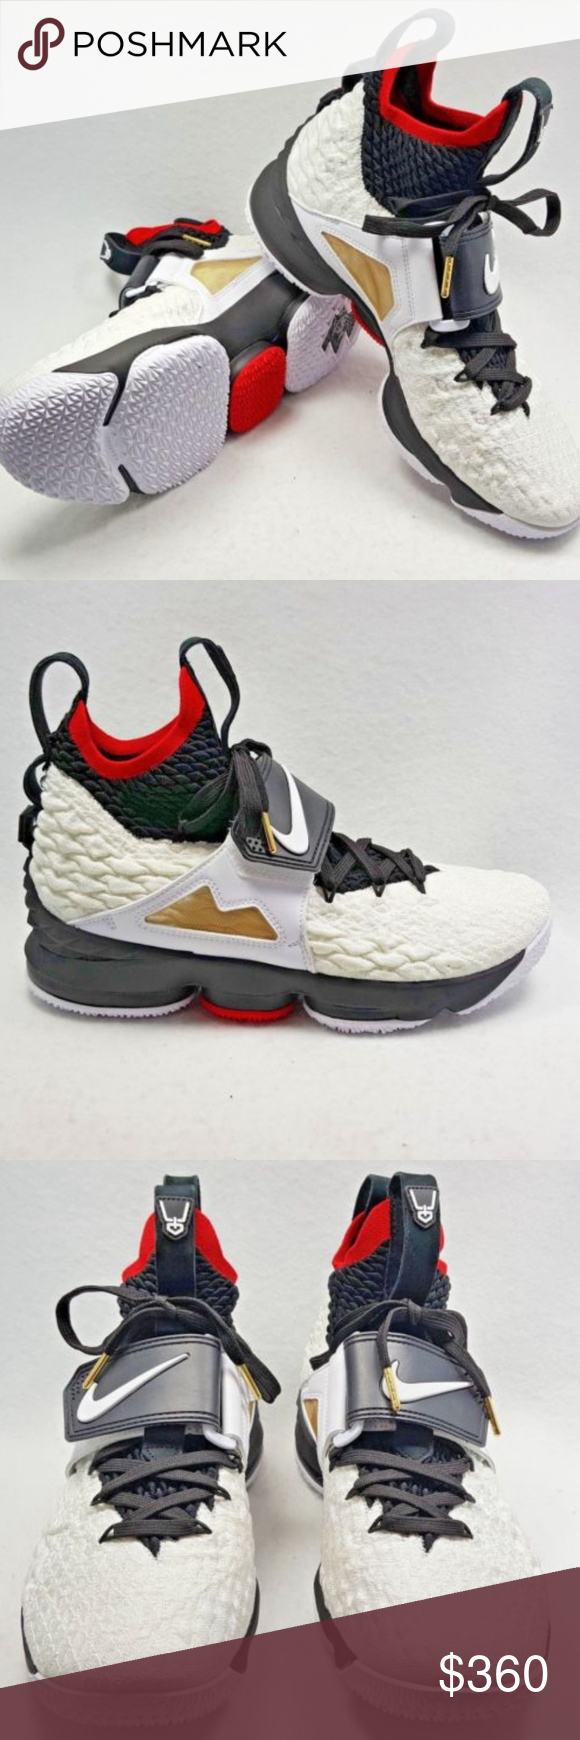 hot sale online 8e043 cd8b1 Nike Lebron XV 15 Prime Diamond Turf Deion Sanders ** Box ...